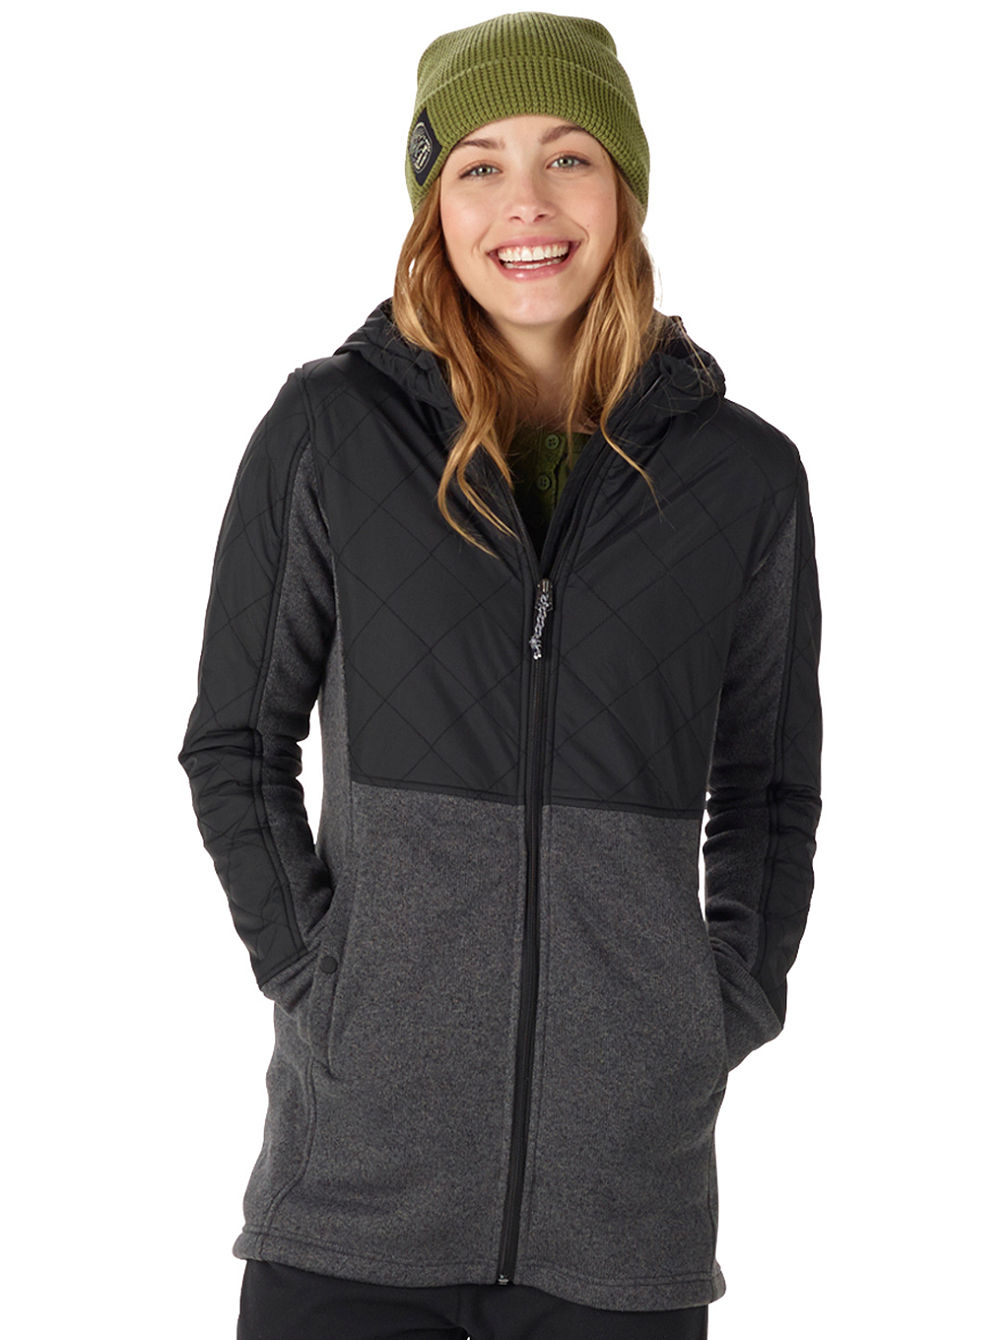 Embry Fleece Kapuzenjacke